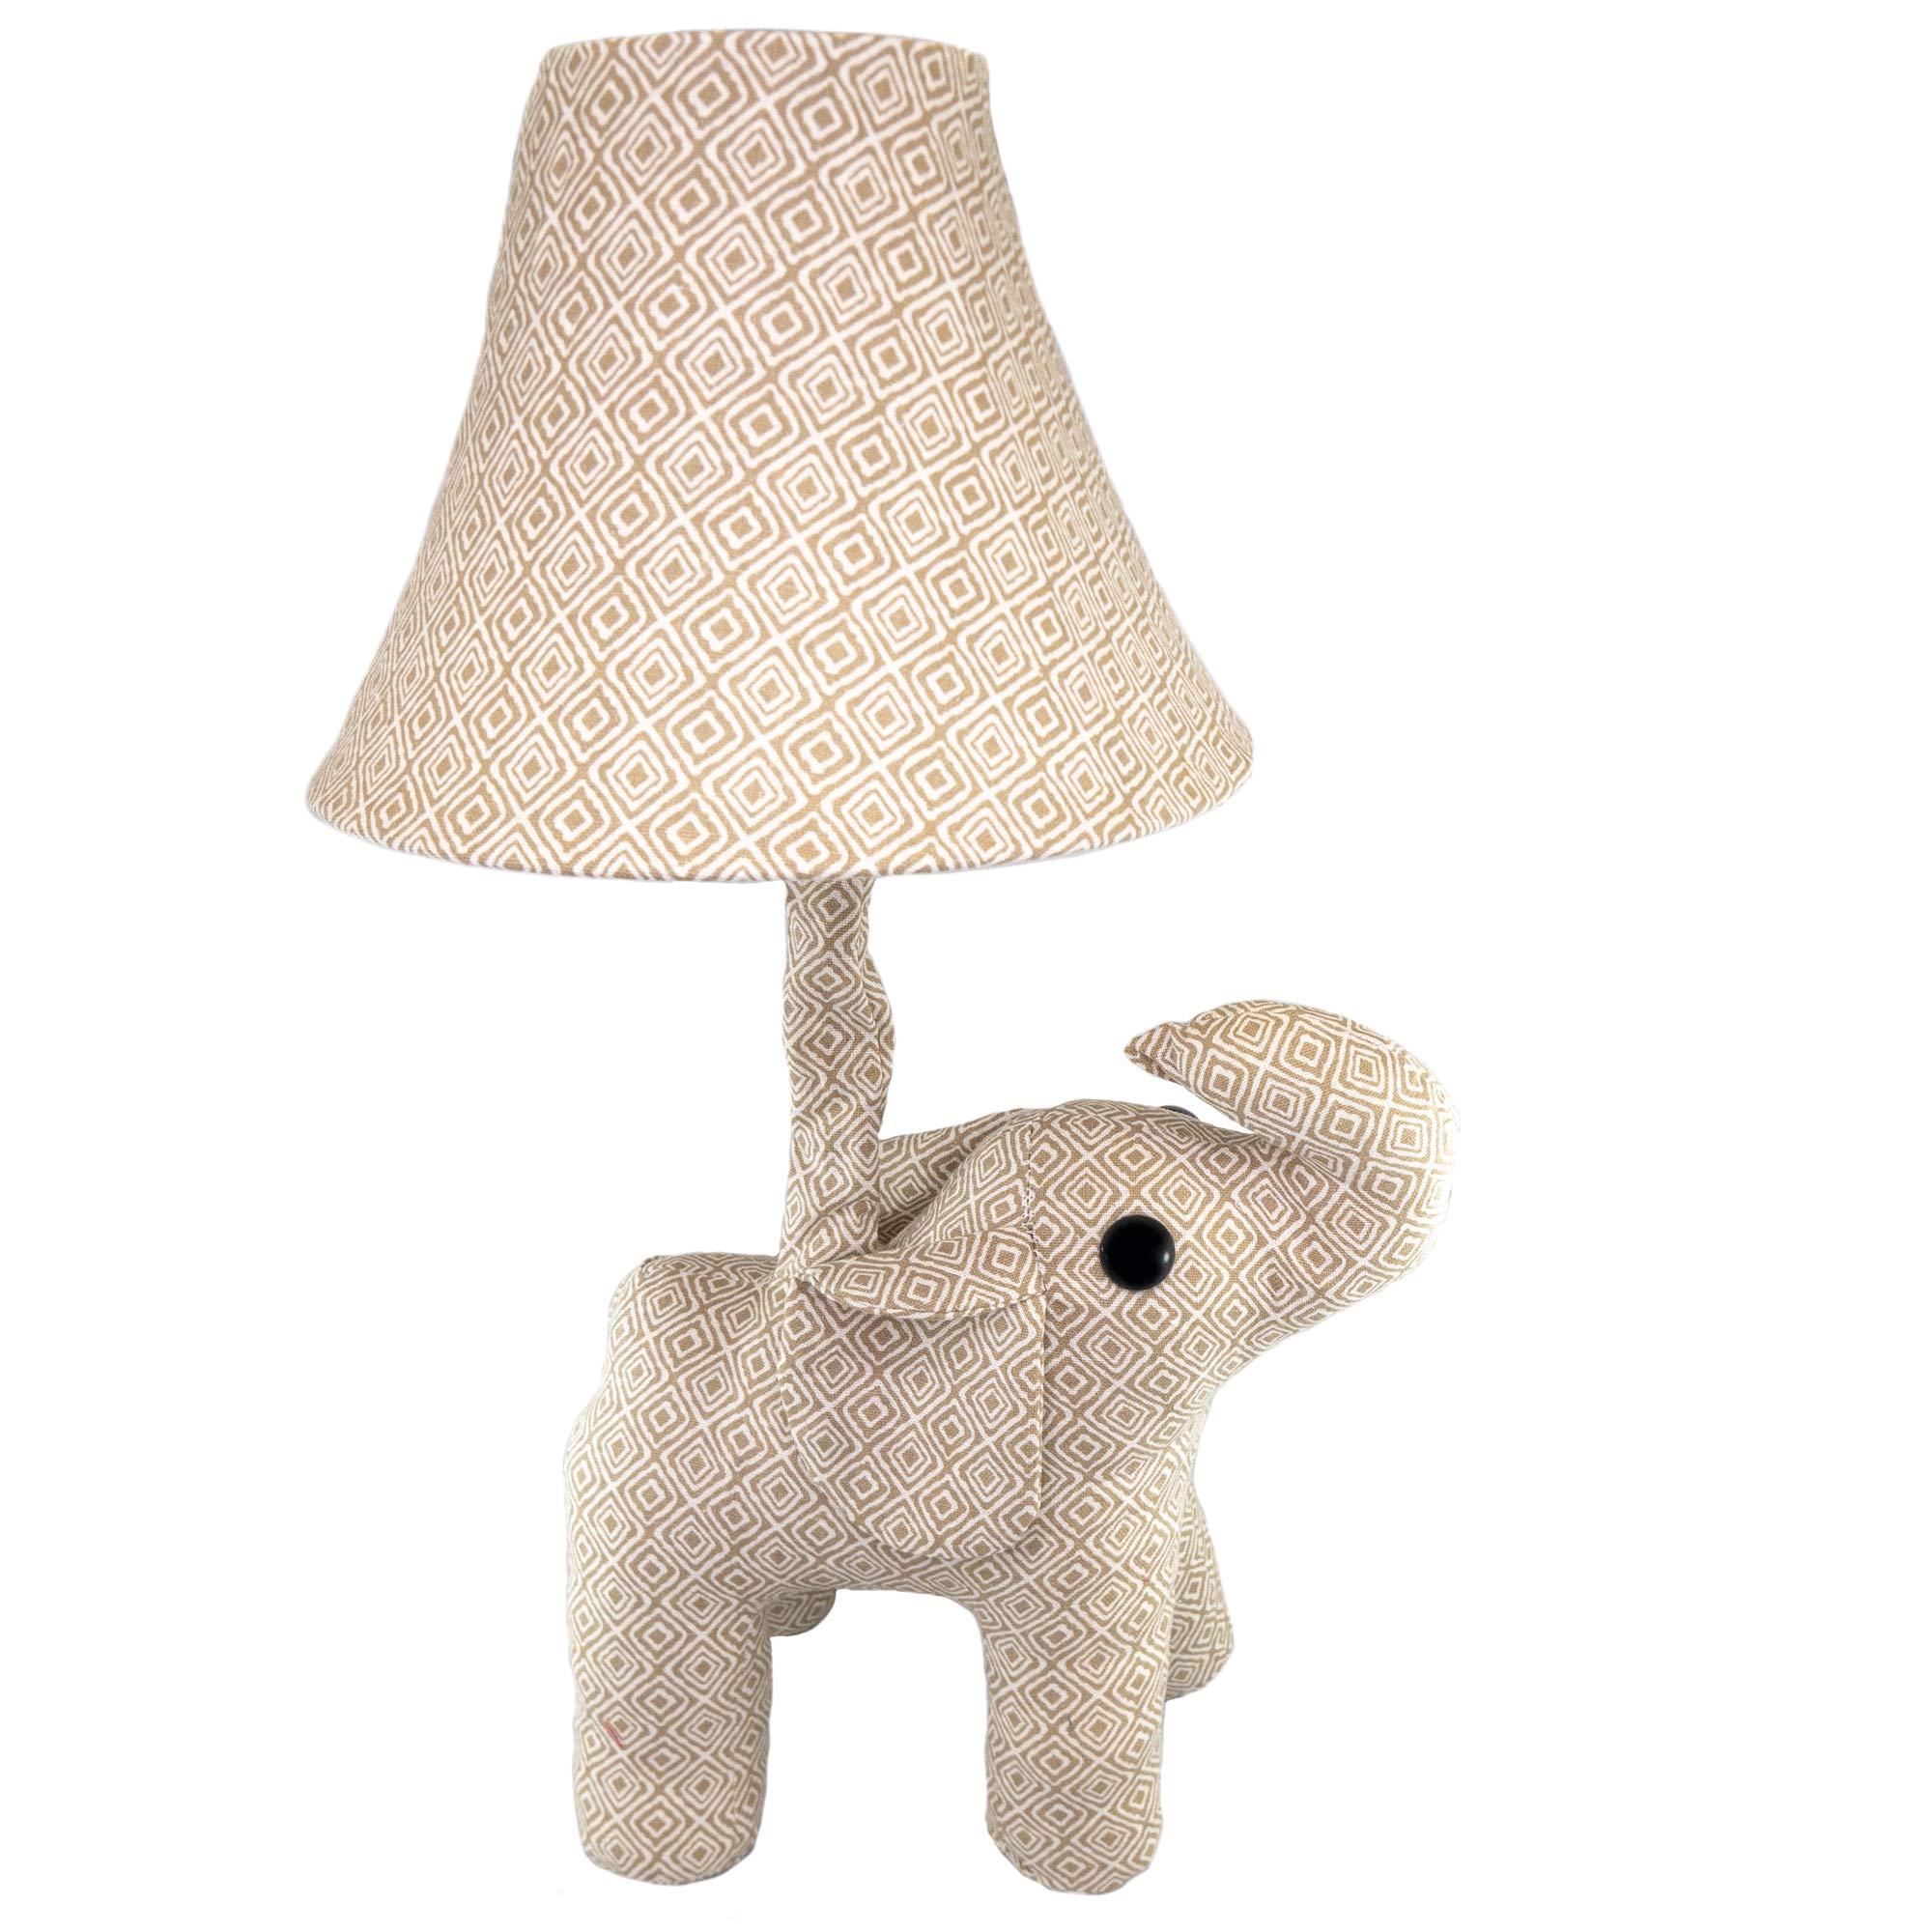 Fifth + Nest Kids Nursery Lamp - Plush Animal Table Top Lamps for Bedrooms - Cute Bedroom Decor for Baby, Toddler and Children's Room